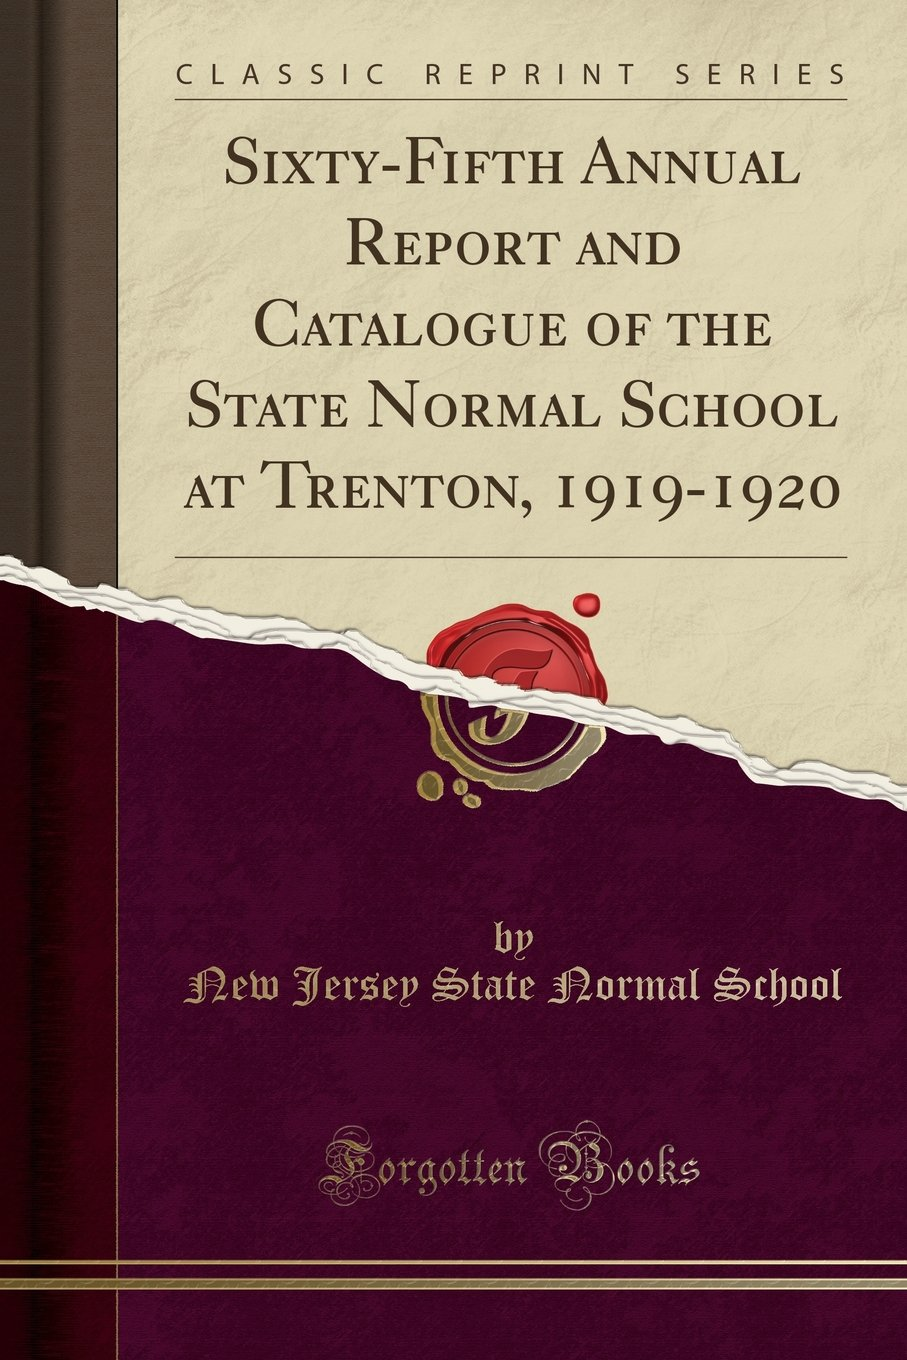 Read Online Sixty-Fifth Annual Report and Catalogue of the State Normal School at Trenton, 1919-1920 (Classic Reprint) ebook